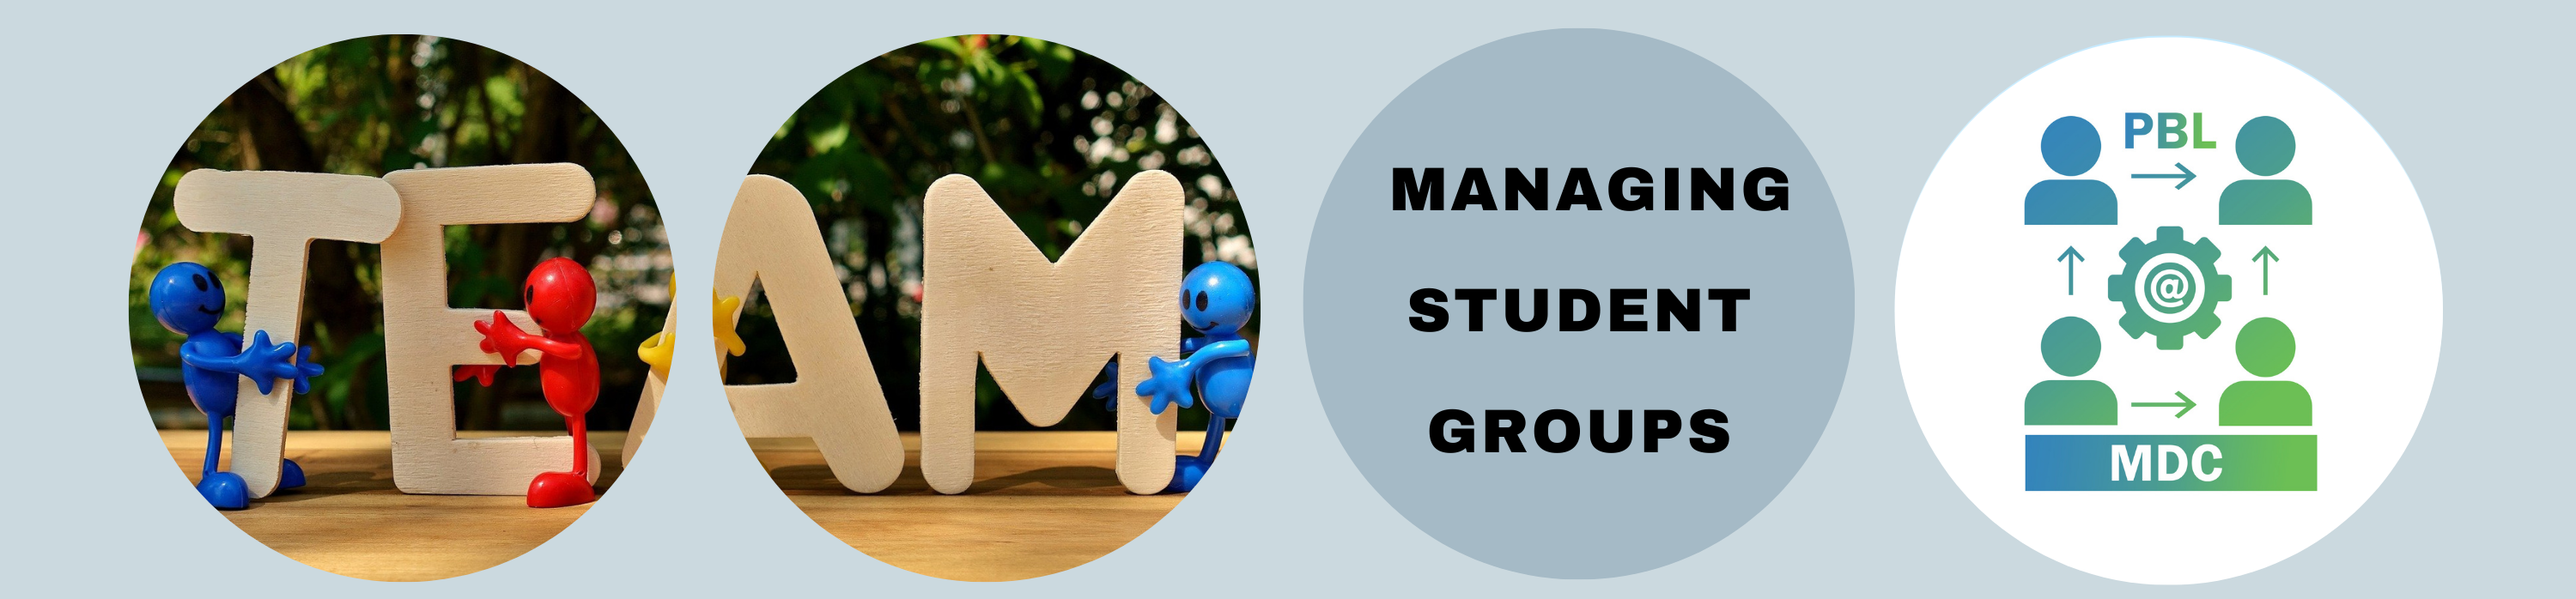 Managing Student Groups